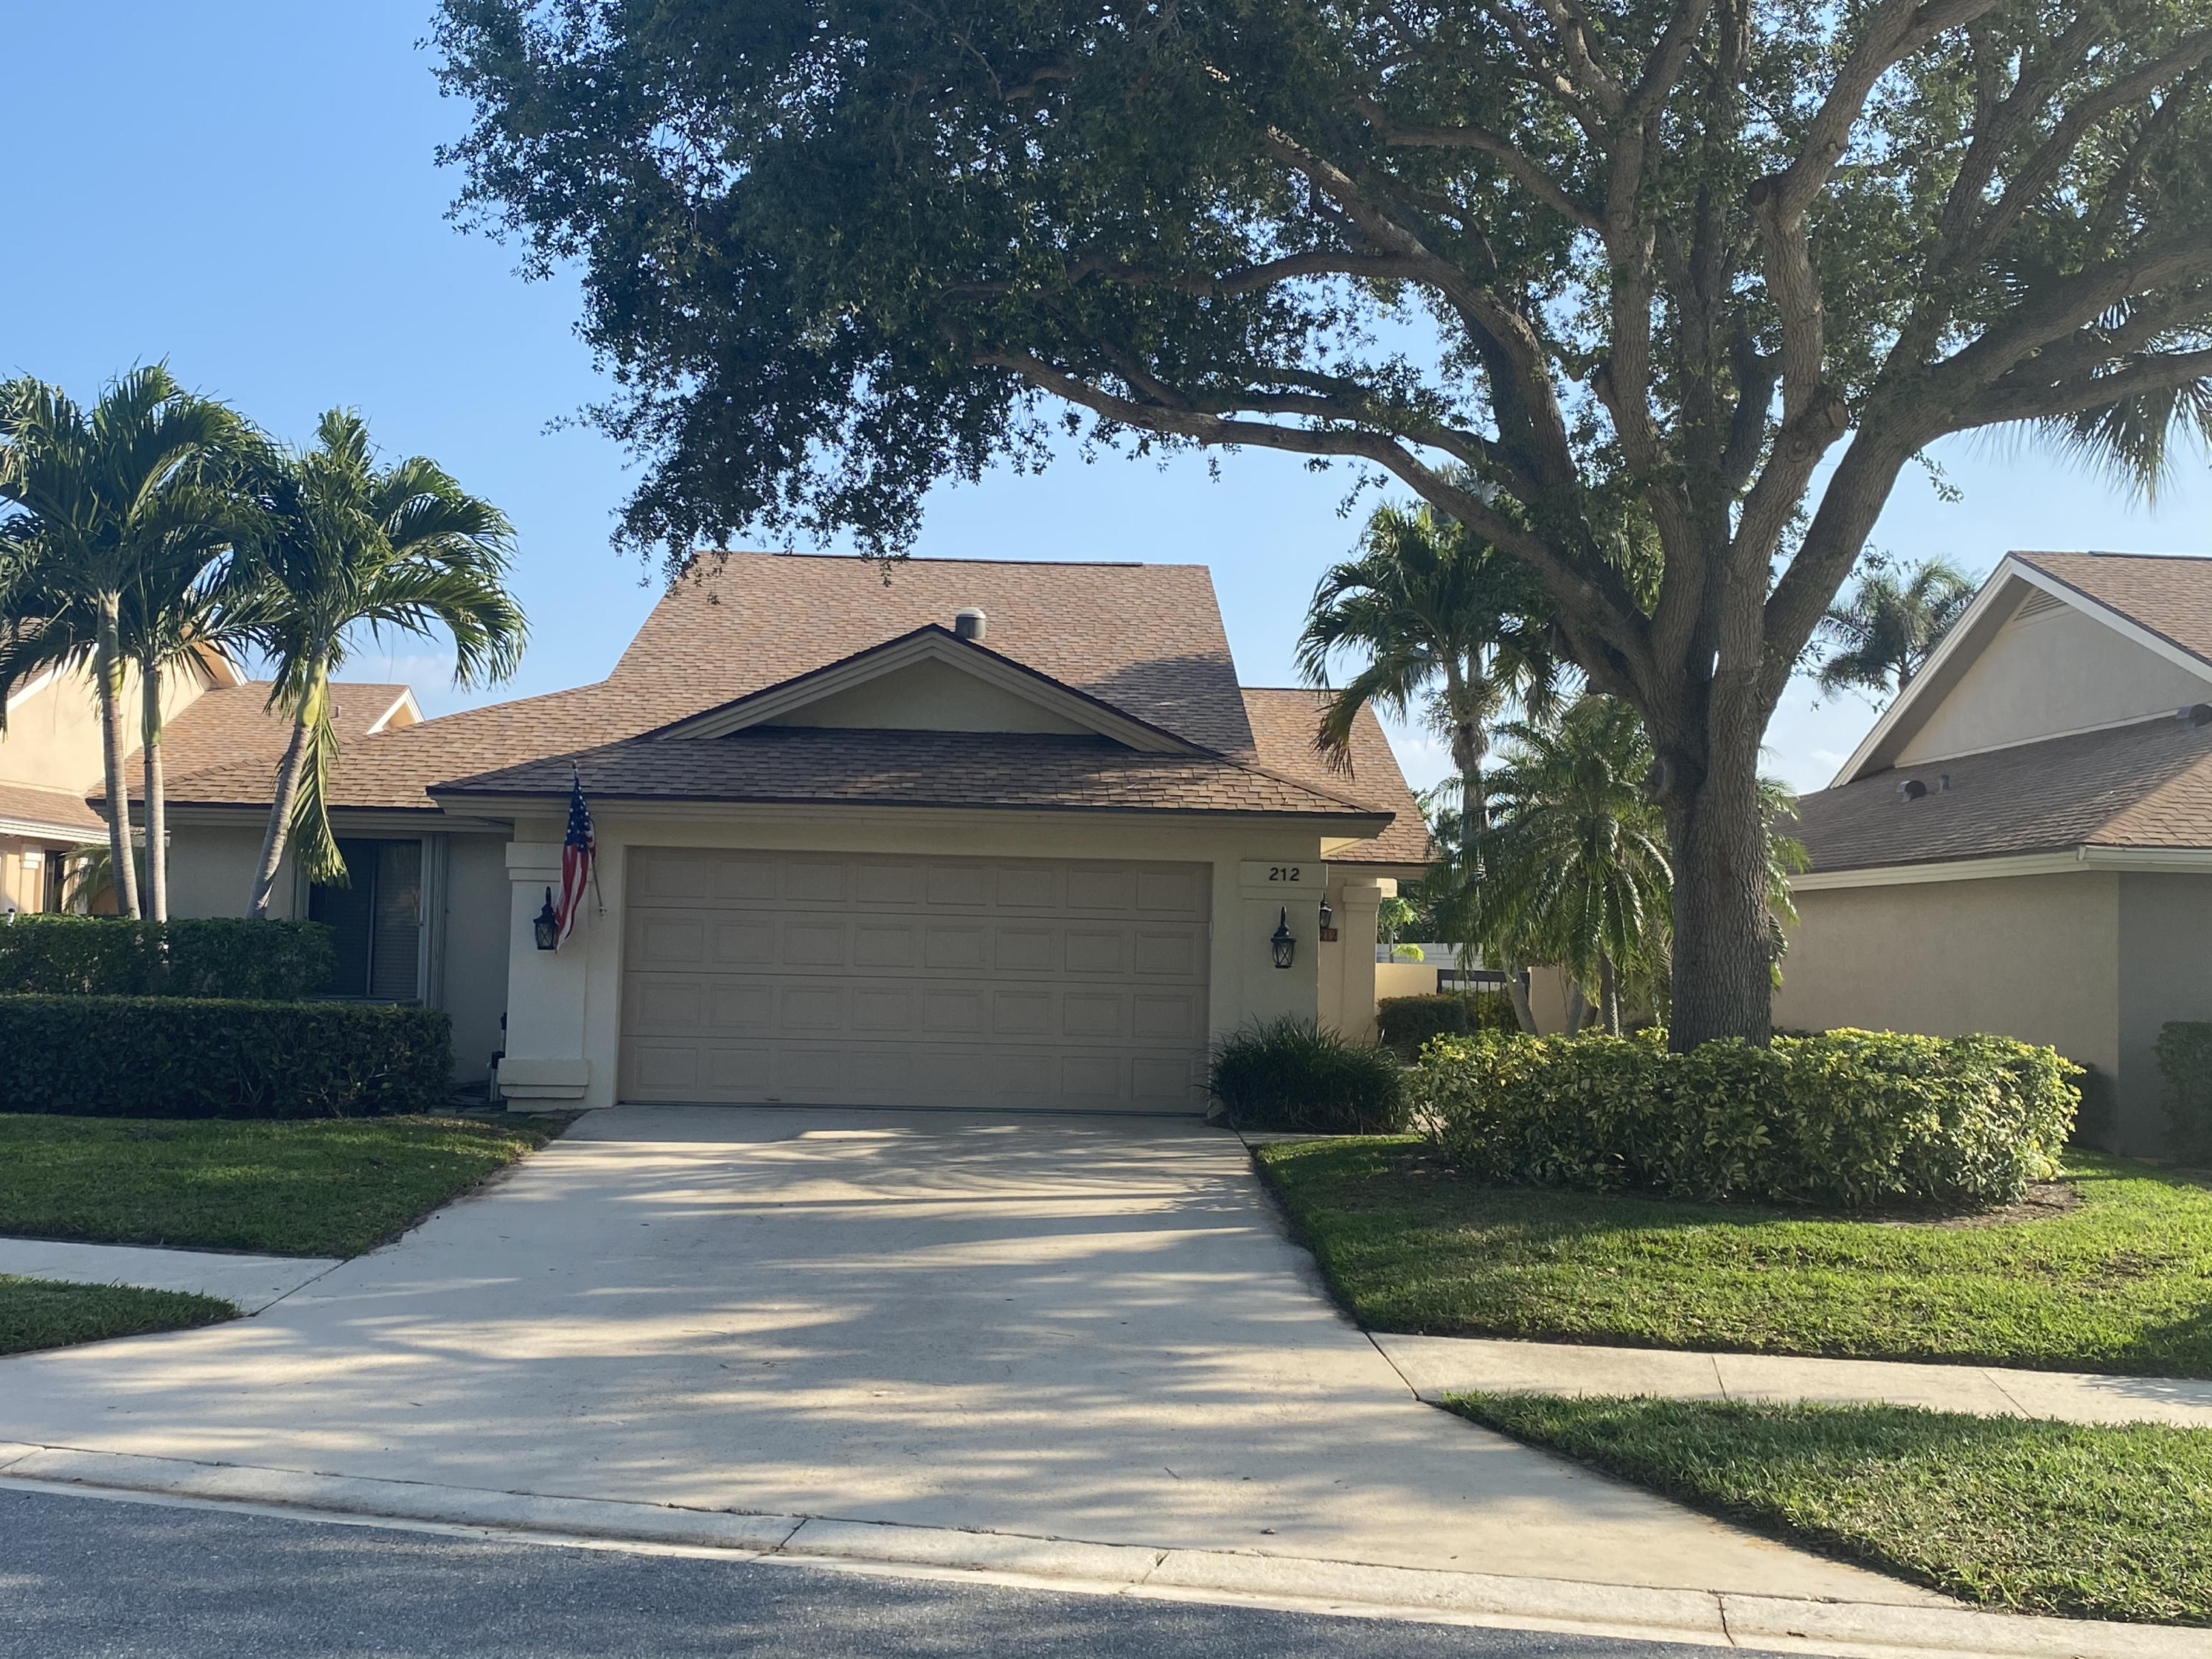 This is the one you have been waiting for! A very rare find as it is one of the largest lots in all of the Bluffs with long lake views and a huge backyard. Home is also centrally located to community pool and amenities. Property has been well maintained and is ready for your personal touches. Third bedroom has finished loft with stairs. Finished Florida Room and very easy to maintain with accordion shutters. Listing agent related to owner.